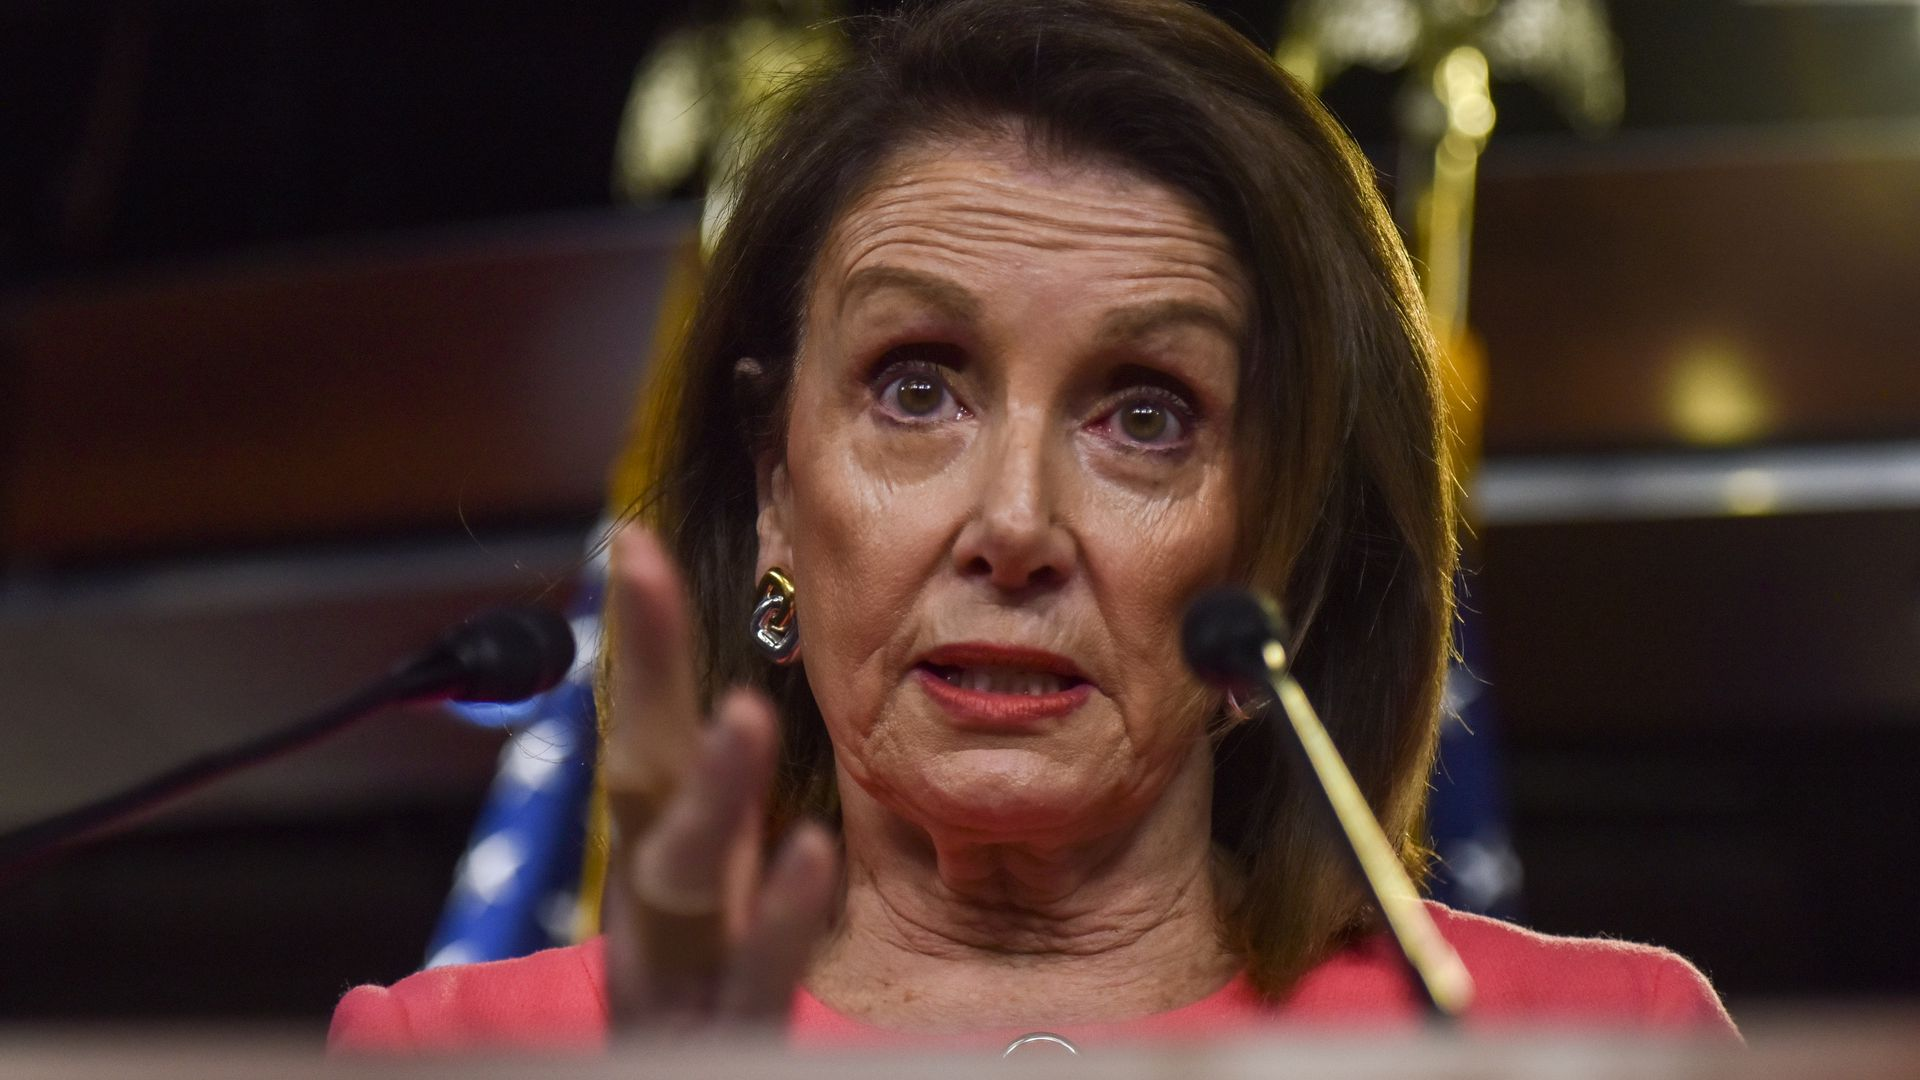 In this image, Pelosi gestures from behind a podium.